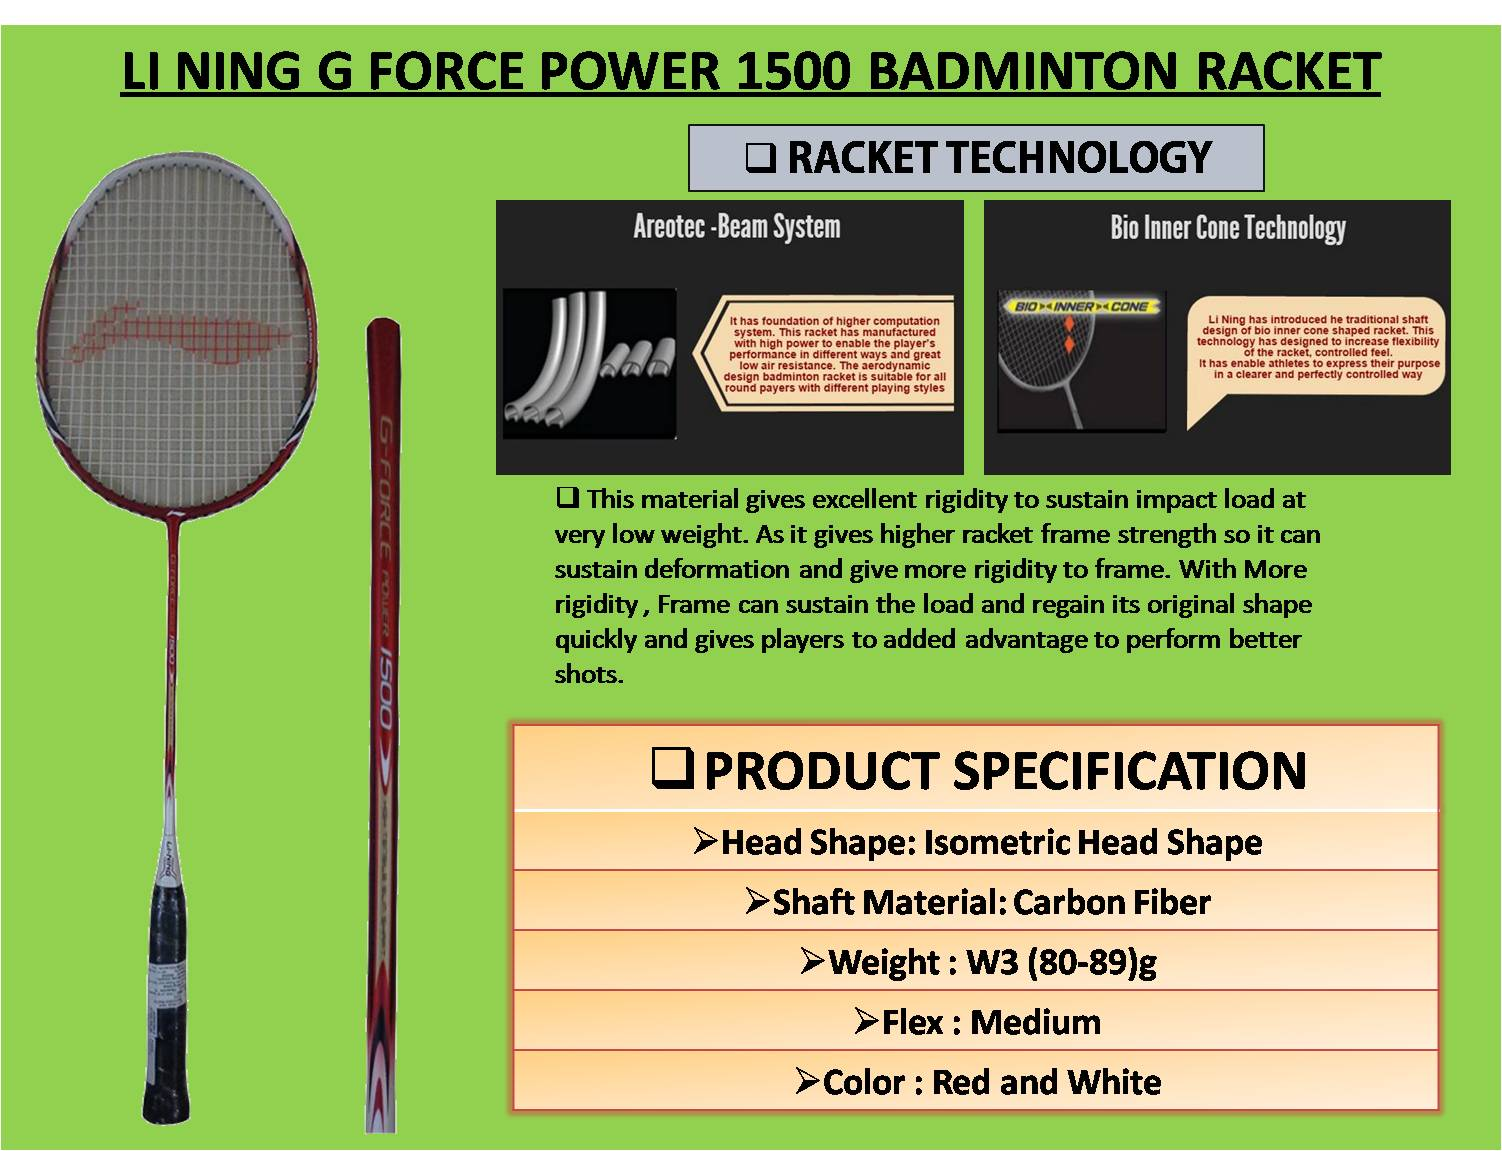 LI NING G FORCE POWER 1500 BADMINTON RACKET